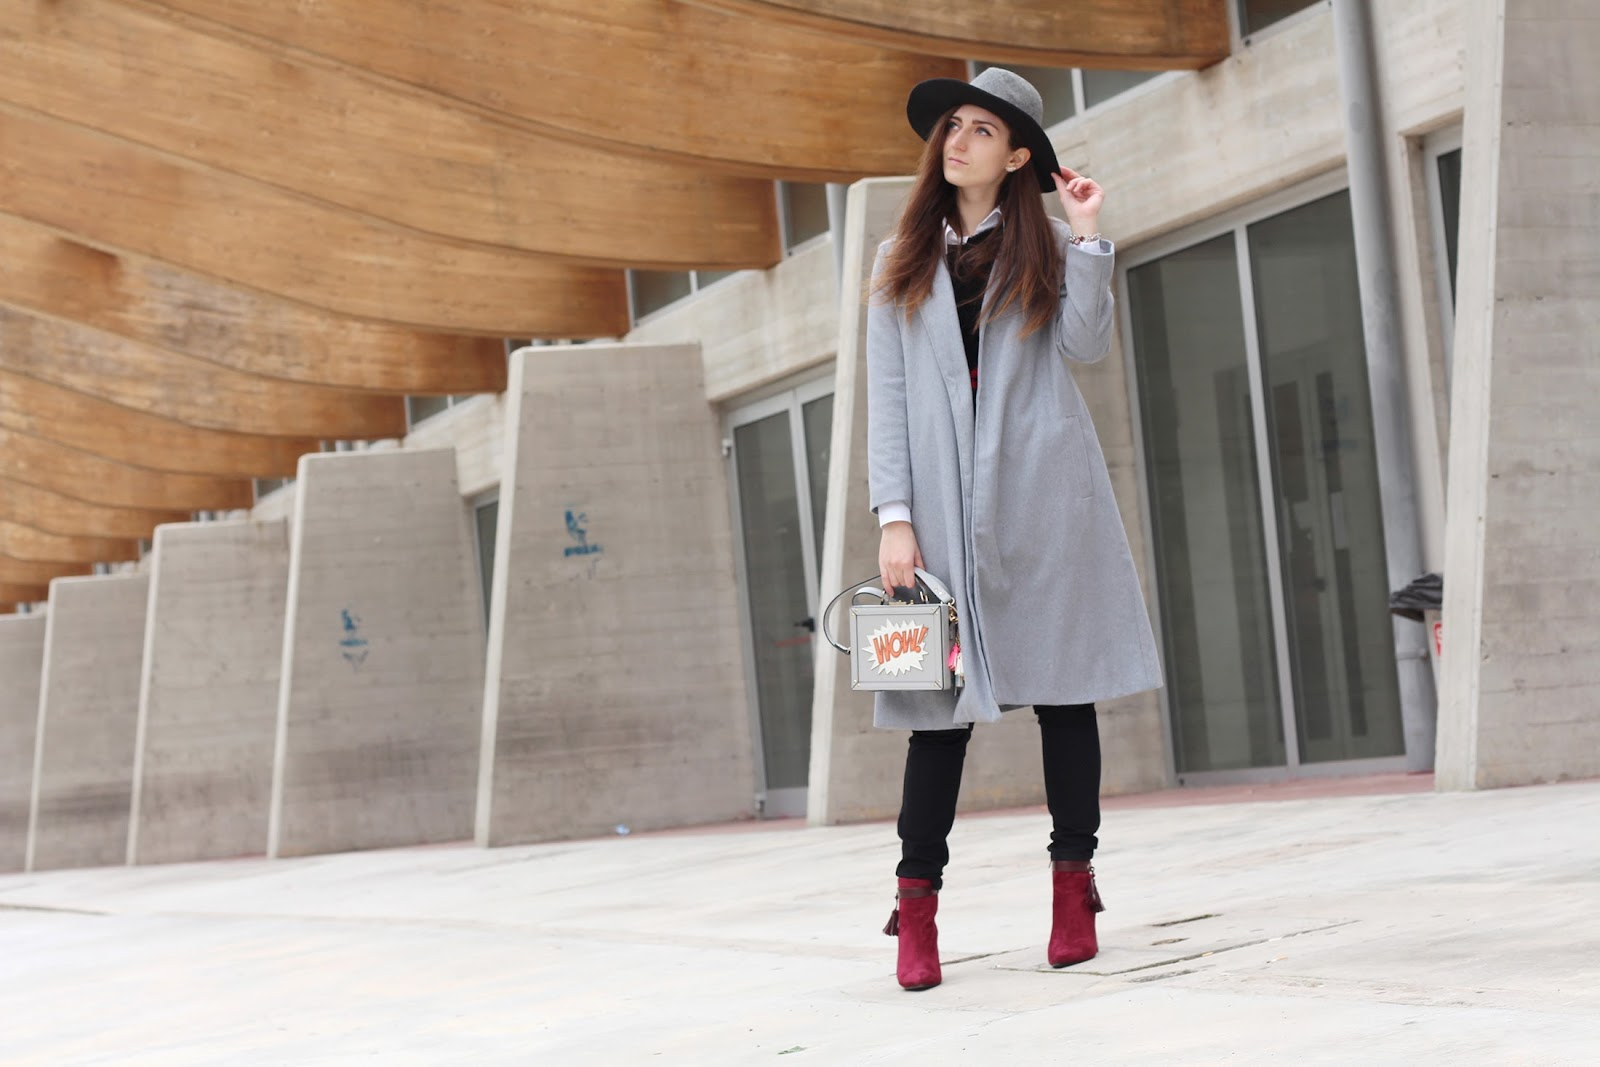 fashion style blogger italian girl italy vogue glamour pescara university shein sheinside coat grey cappotto grigio lungo cappello hat stradivarius boots stivali scarpe shoes amiclubwear accessorize wow bag borsa cartoon ocean fashion earrings orecchini